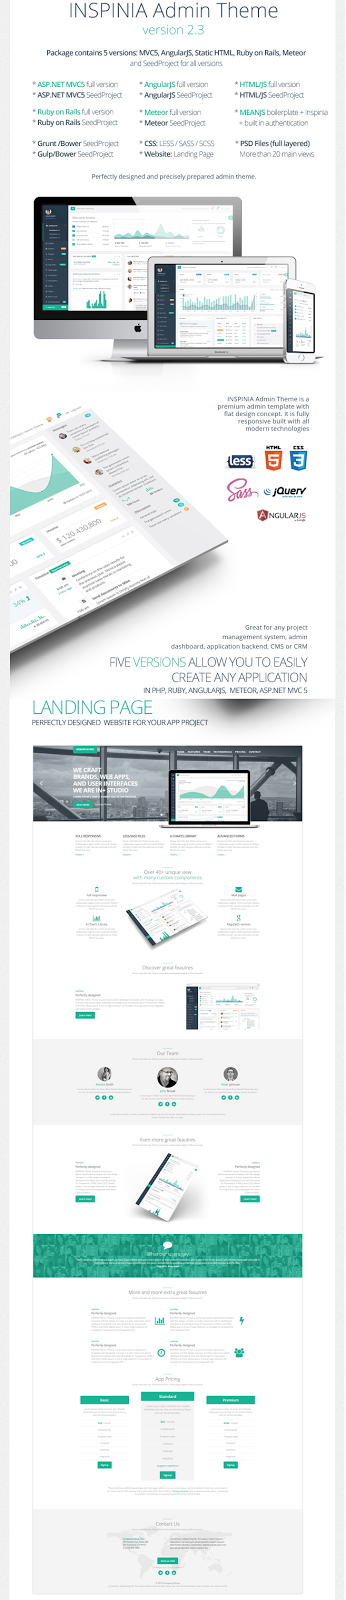 Most Popular Responsive Admin Theme